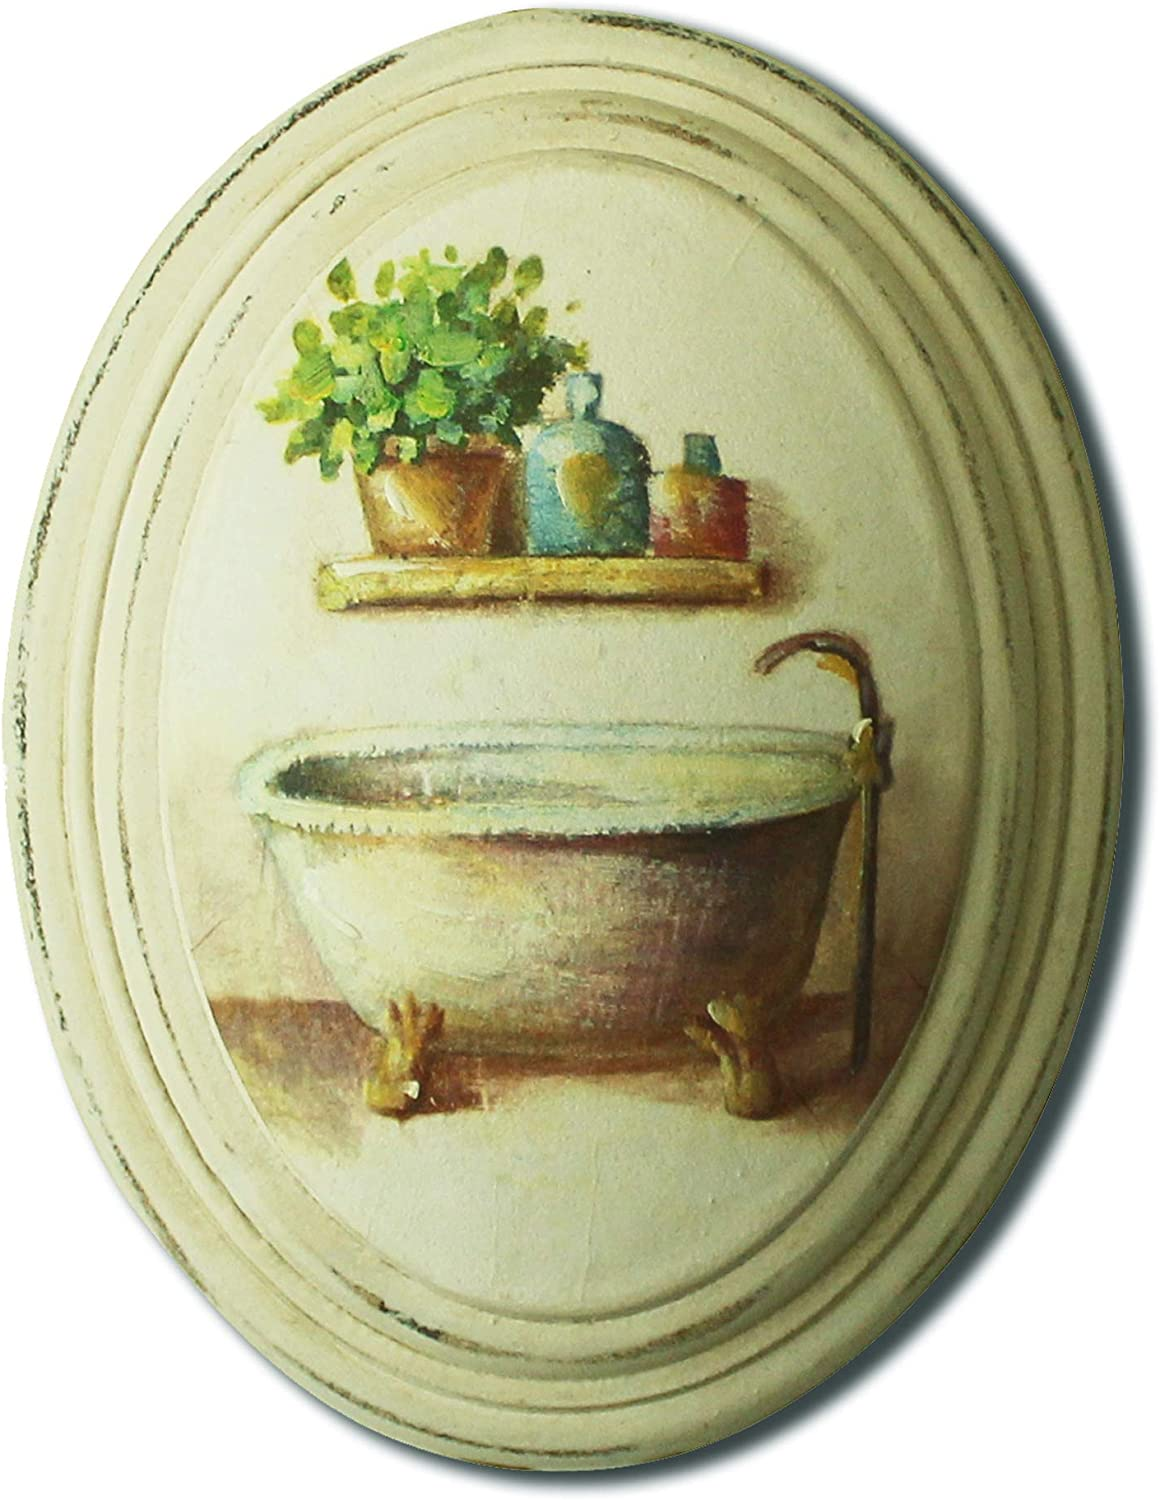 CVHOMEDECO. National products Max 83% OFF Primitive Vintage Hand Painted Oval Wooden Wal Frame